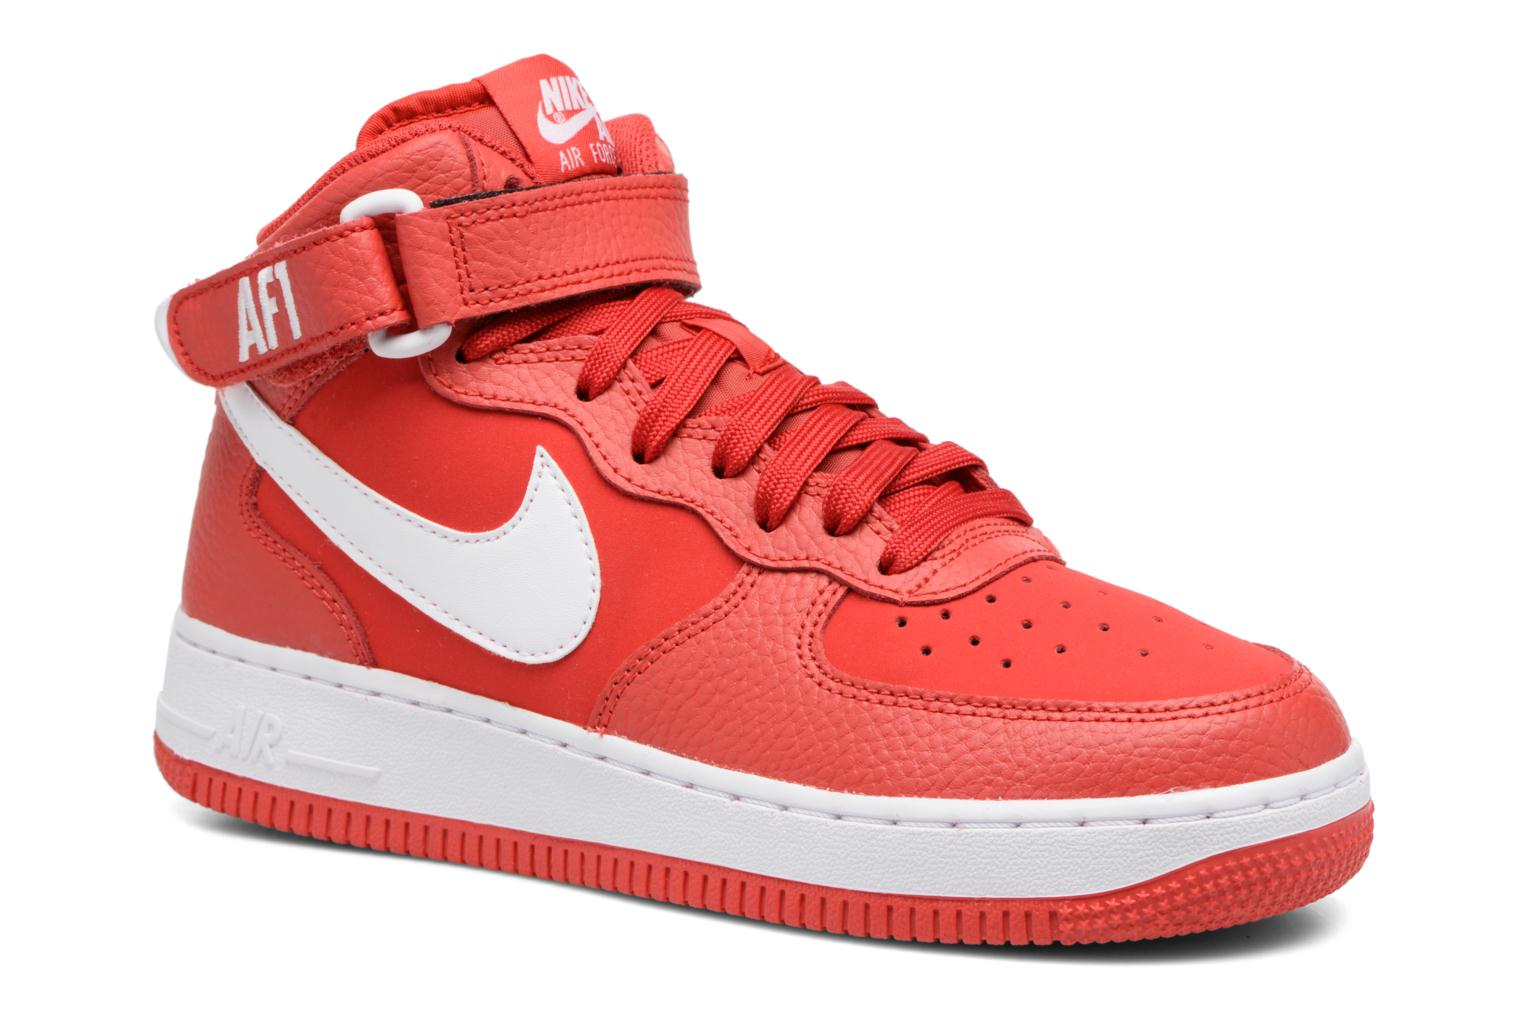 Chez Air Nike gs rosso 310270 1 Mid Force Sneakers Sarenza xqZR0xnvr